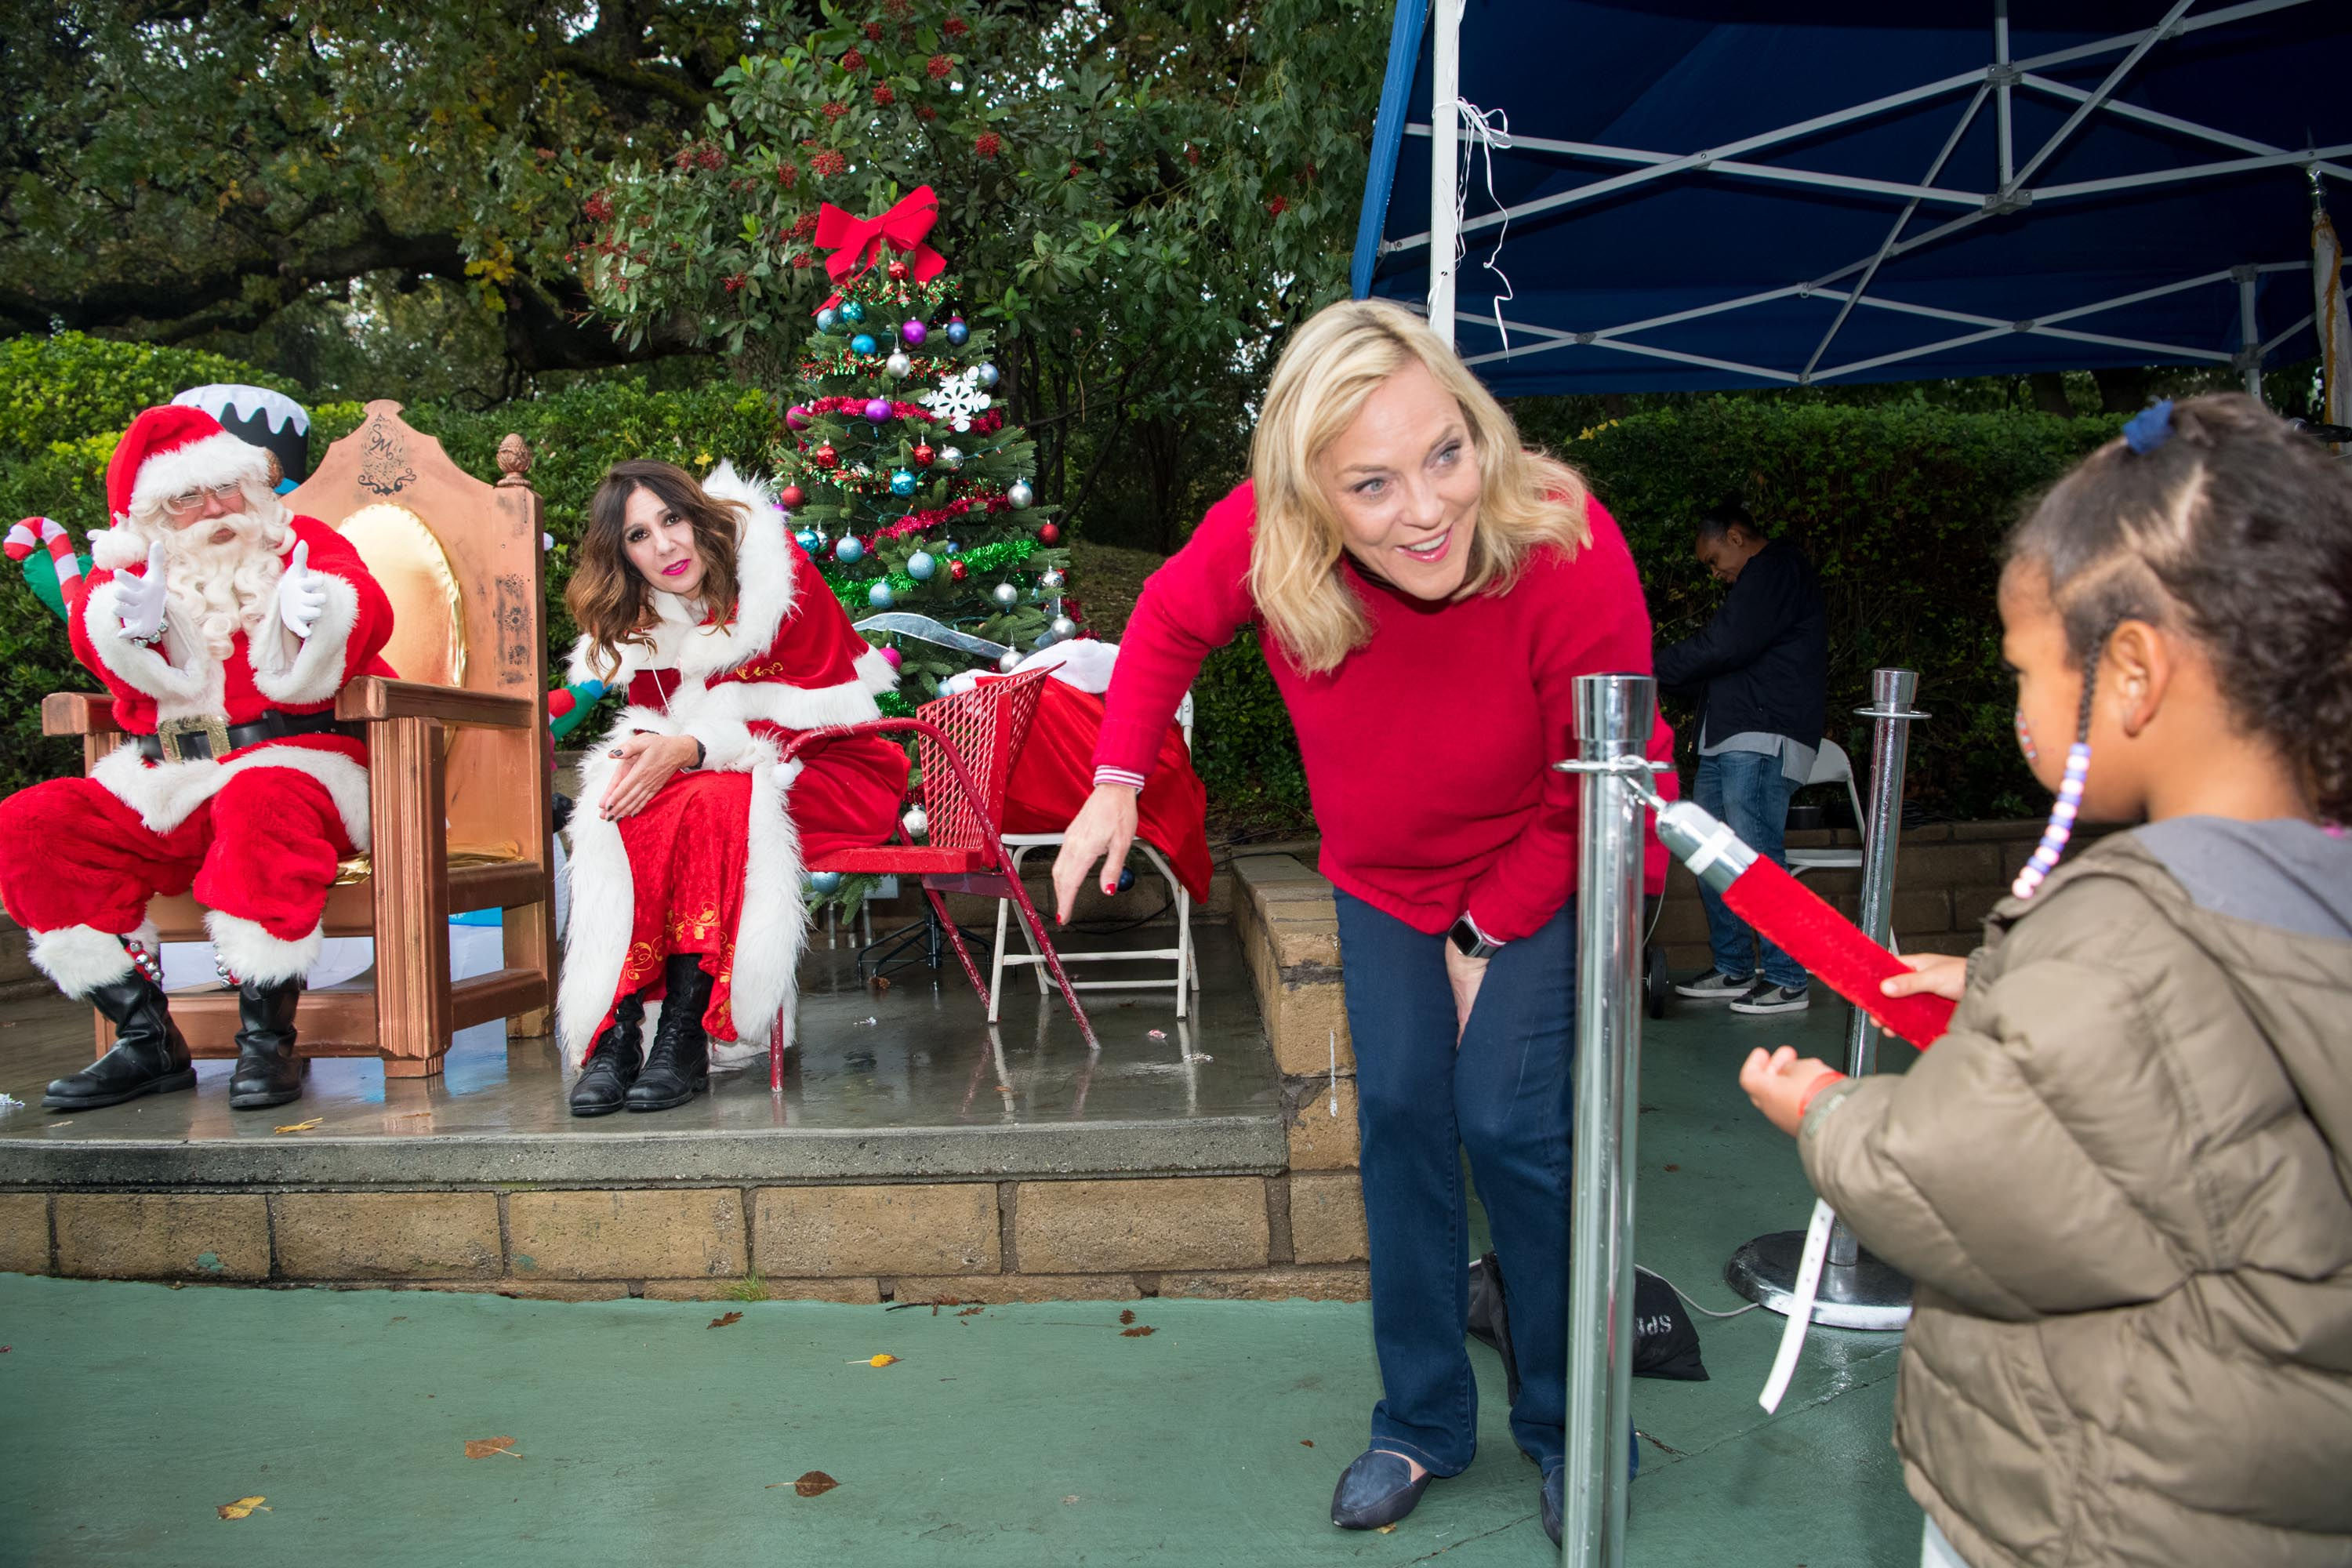 District 5 – Supervisor Kathryn Barger<br>  <b>Dec. 7, 2019 - Foster Kids Holiday Party.</b><br>   <i>Photo by Michael Owen Baker / For the Board of Supervisors</i>